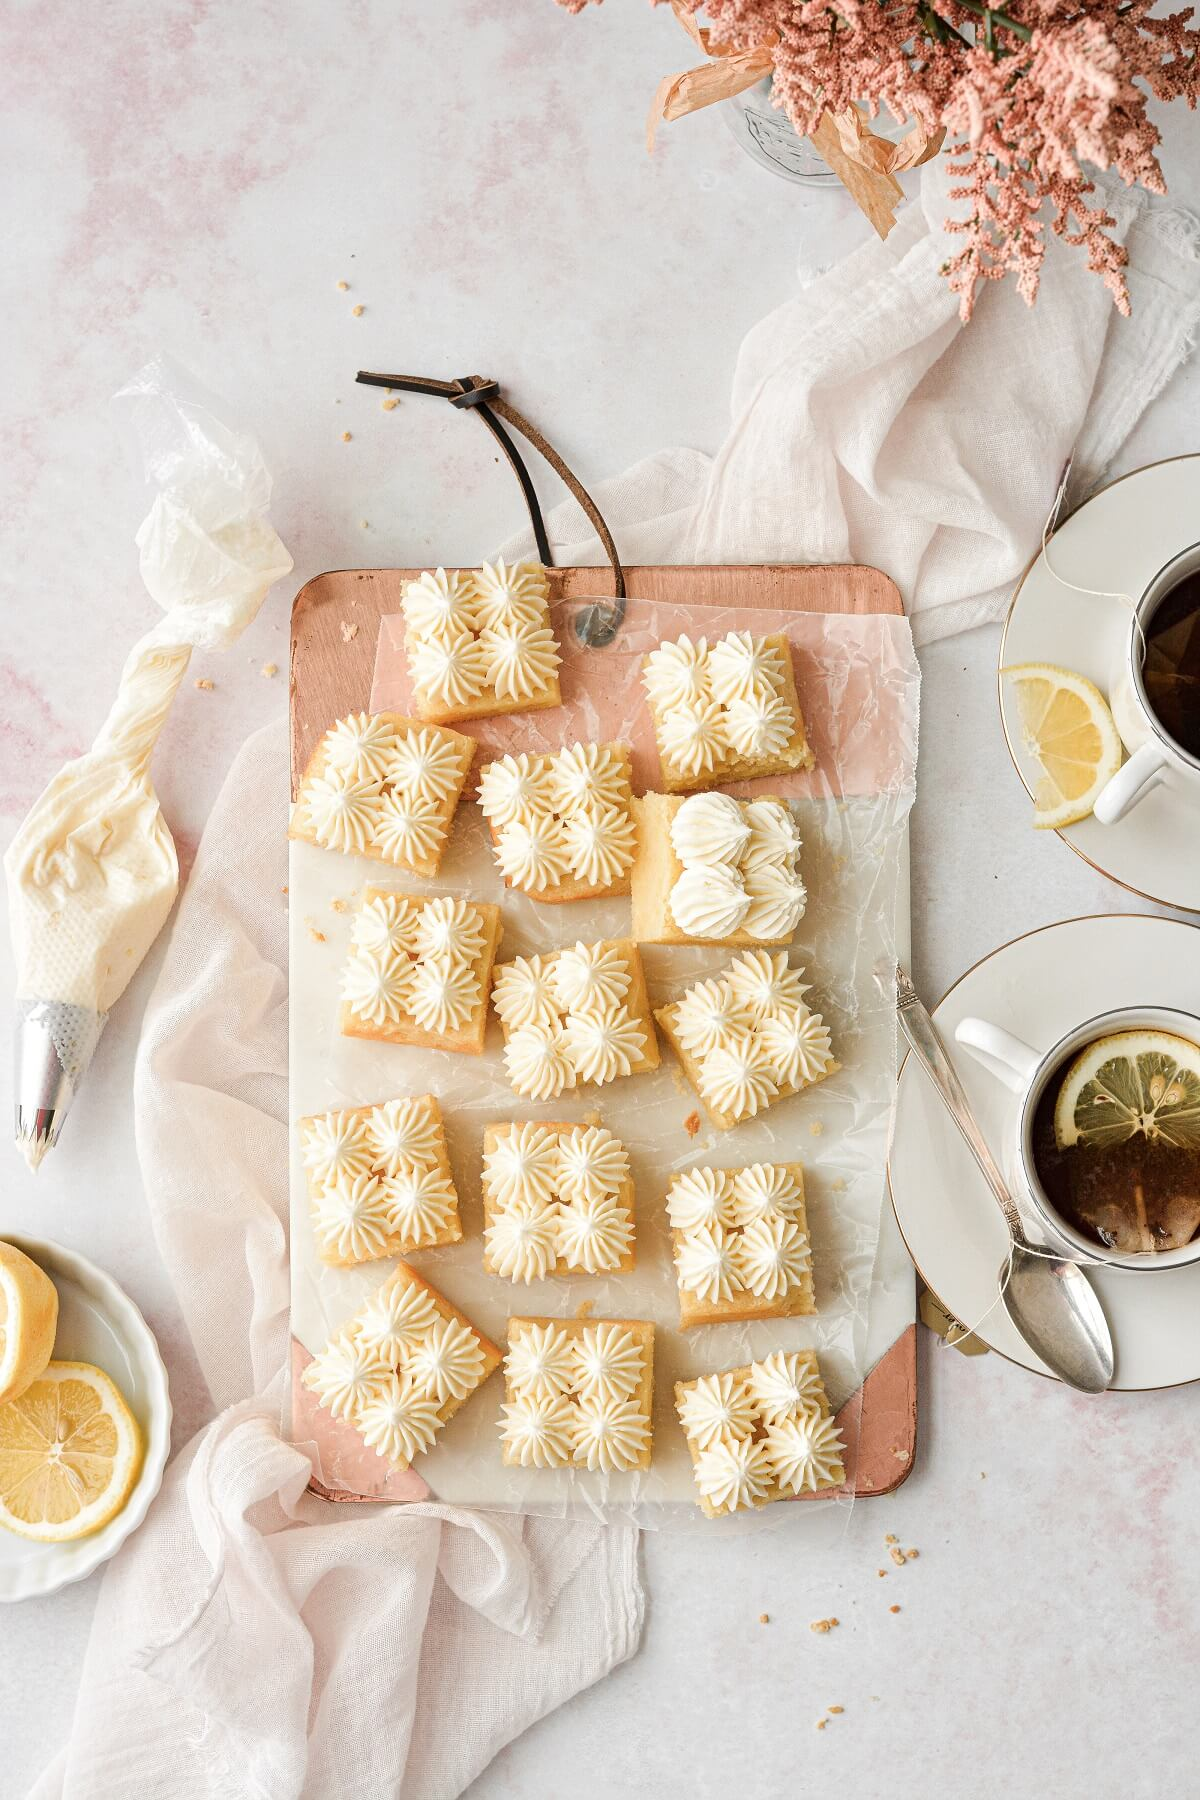 Lemonies, or lemon brownies, cut into squares and frosted with piped lemon buttercream.